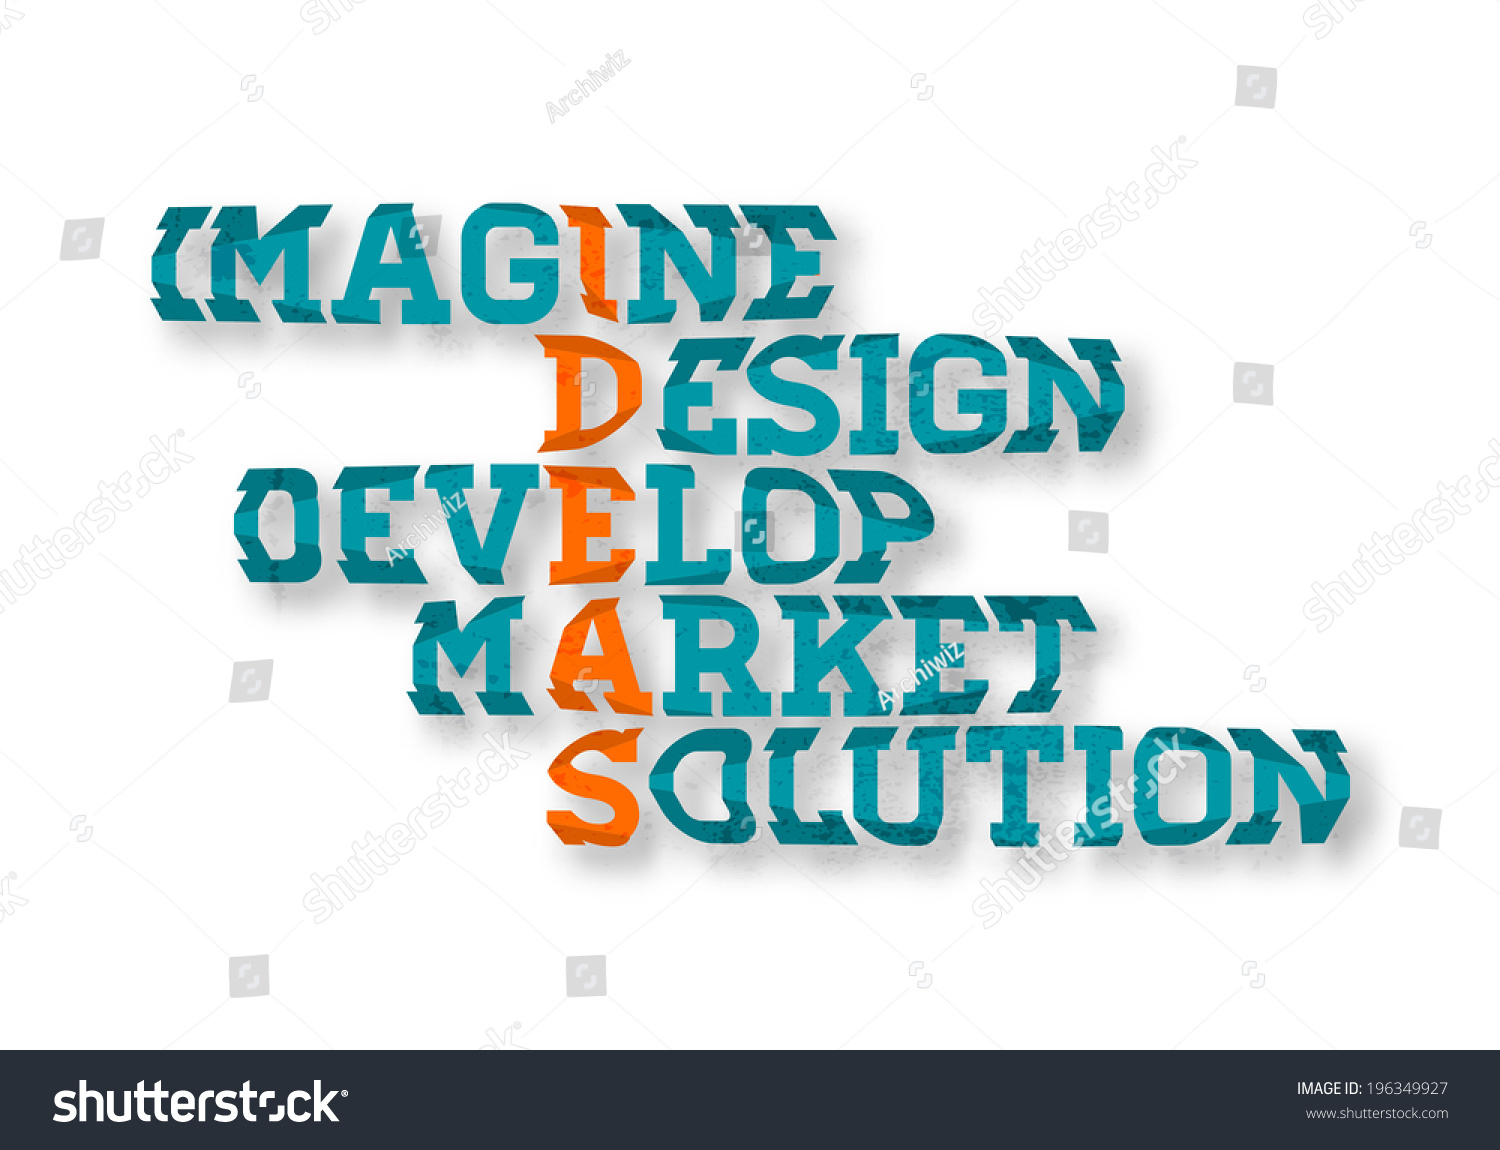 typographic business ideas crossword poster imagine design develop market solution graphic design business ideas - Graphic Design Business Ideas